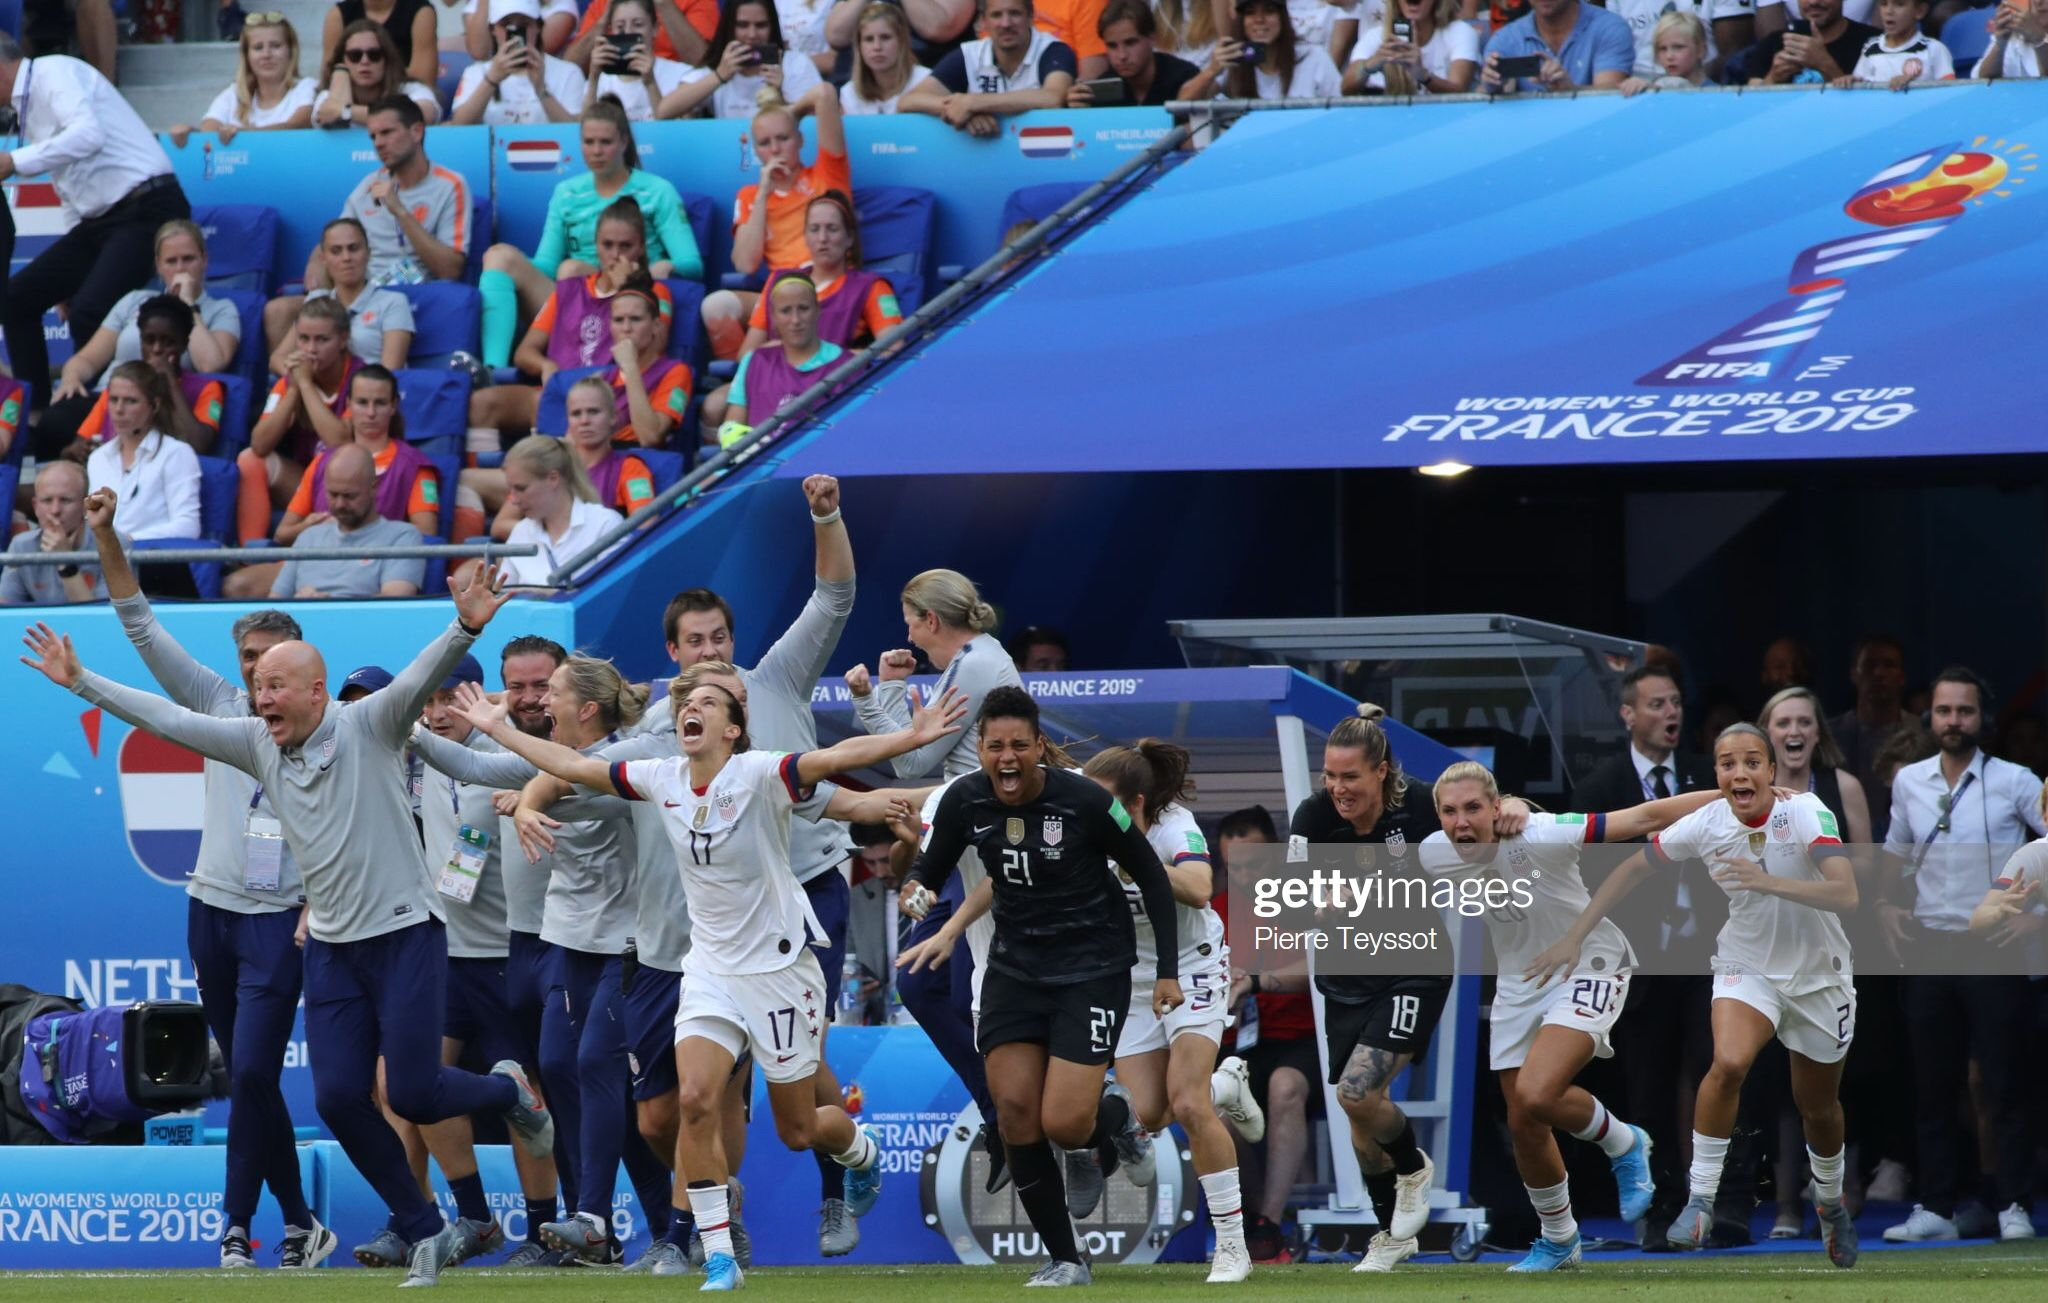 Uswnt World Cup Champions July 7 2019 World Cup Champions Uswnt Soccer Girl Probs